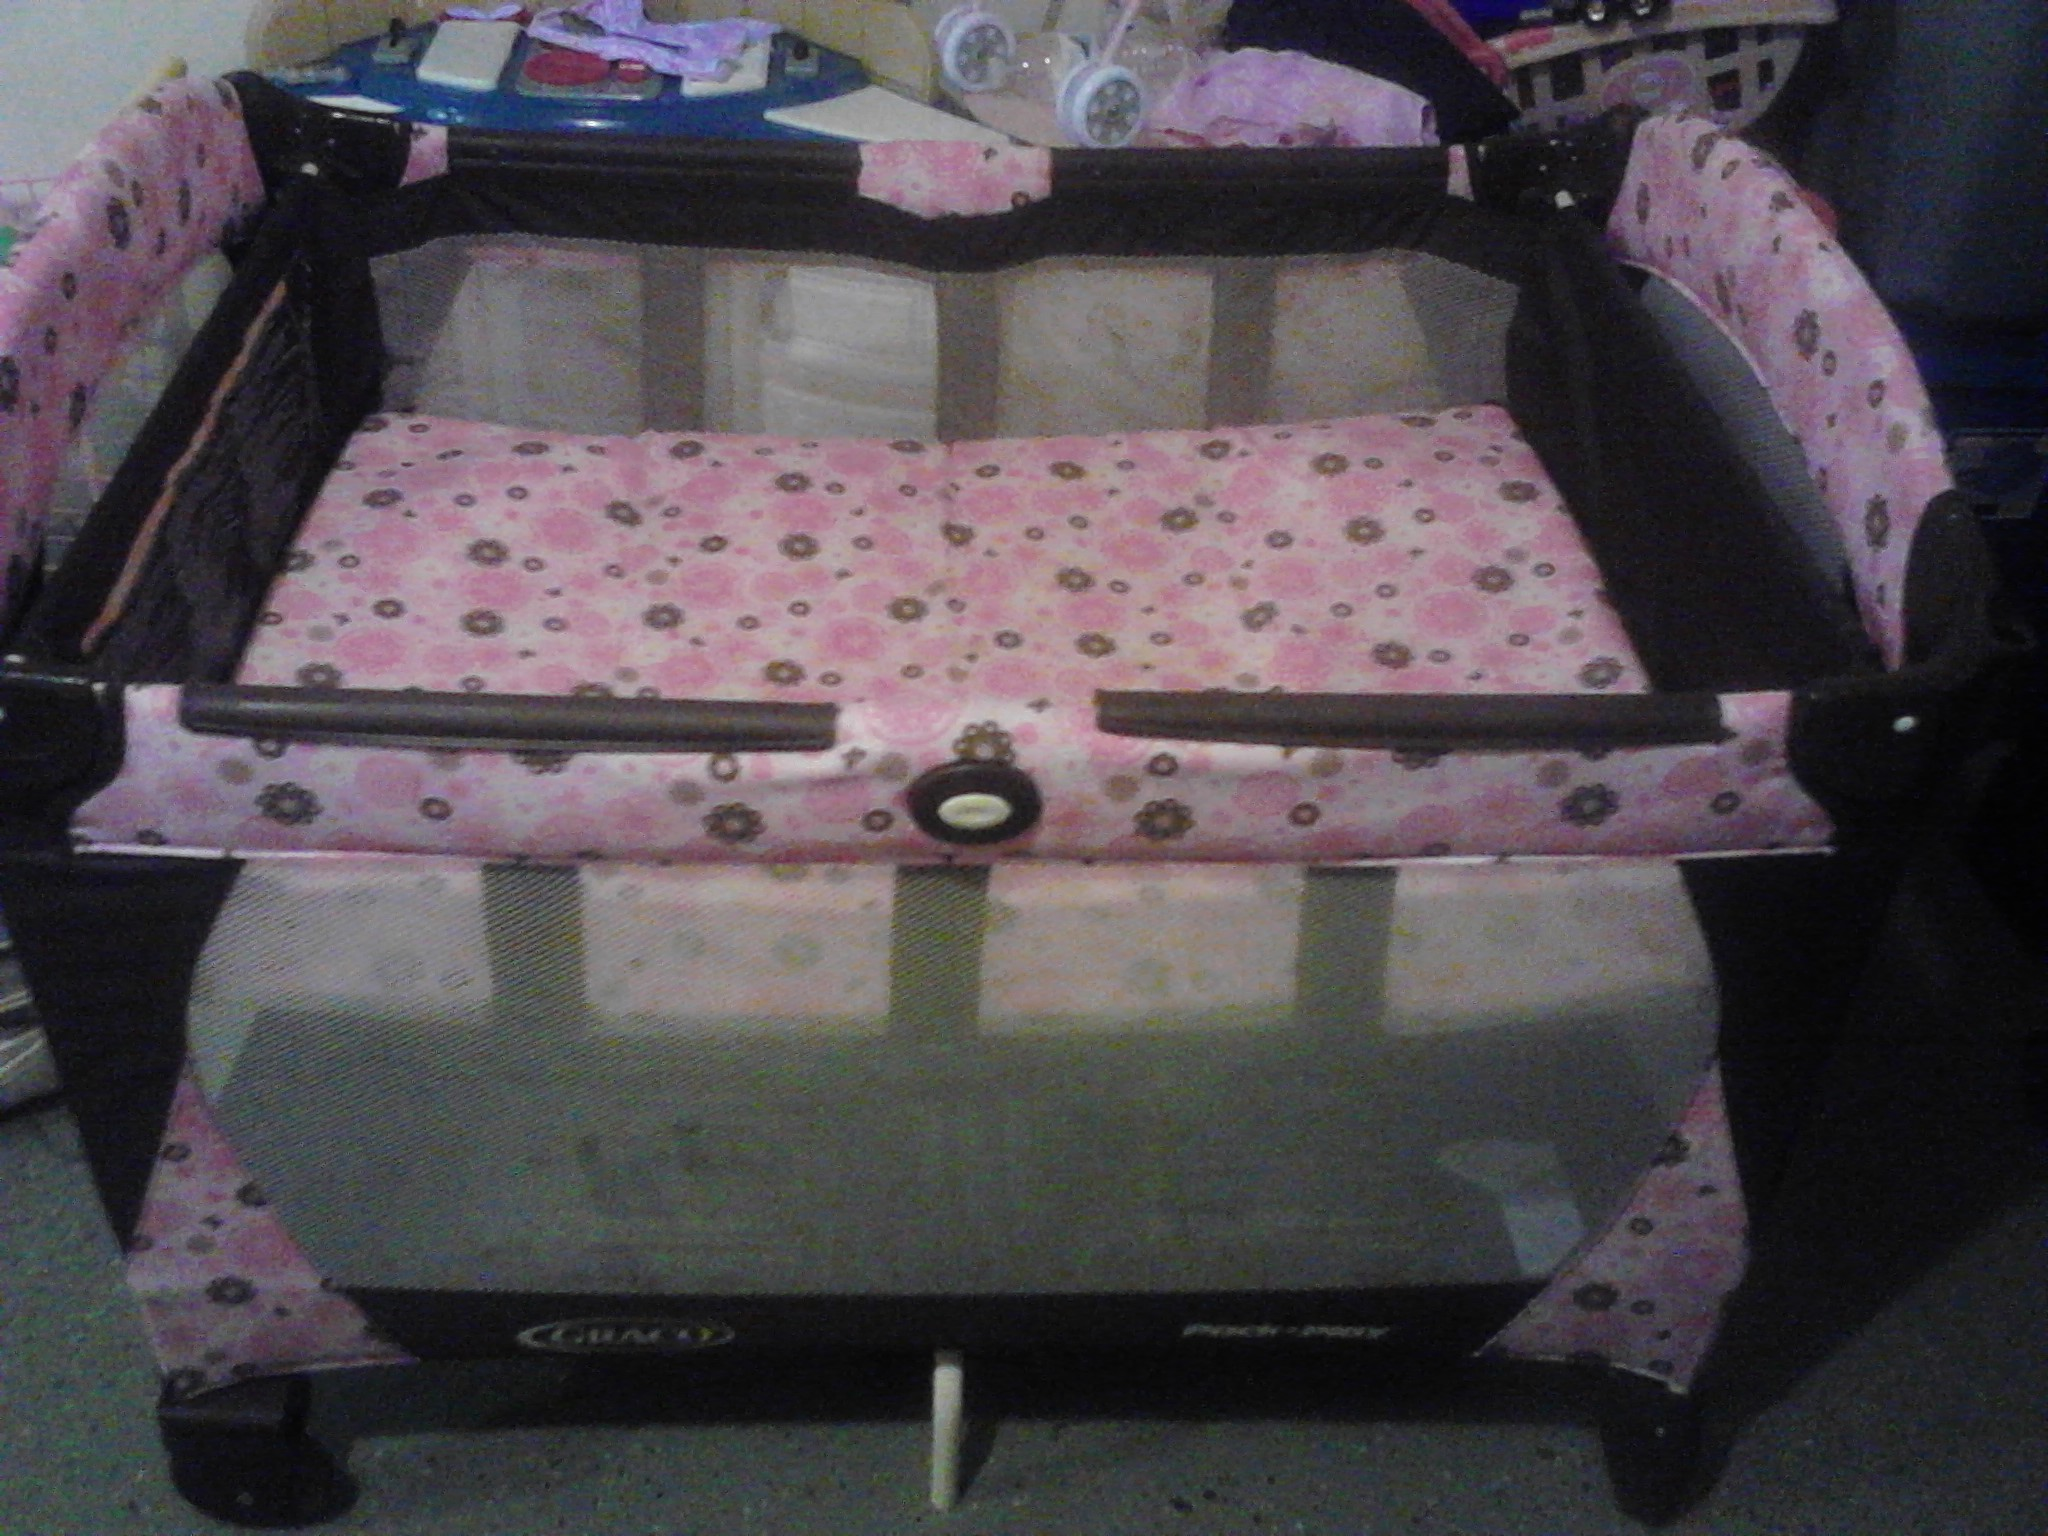 Pnk And Brown Pack N Play In Family Sale60181 S Garage